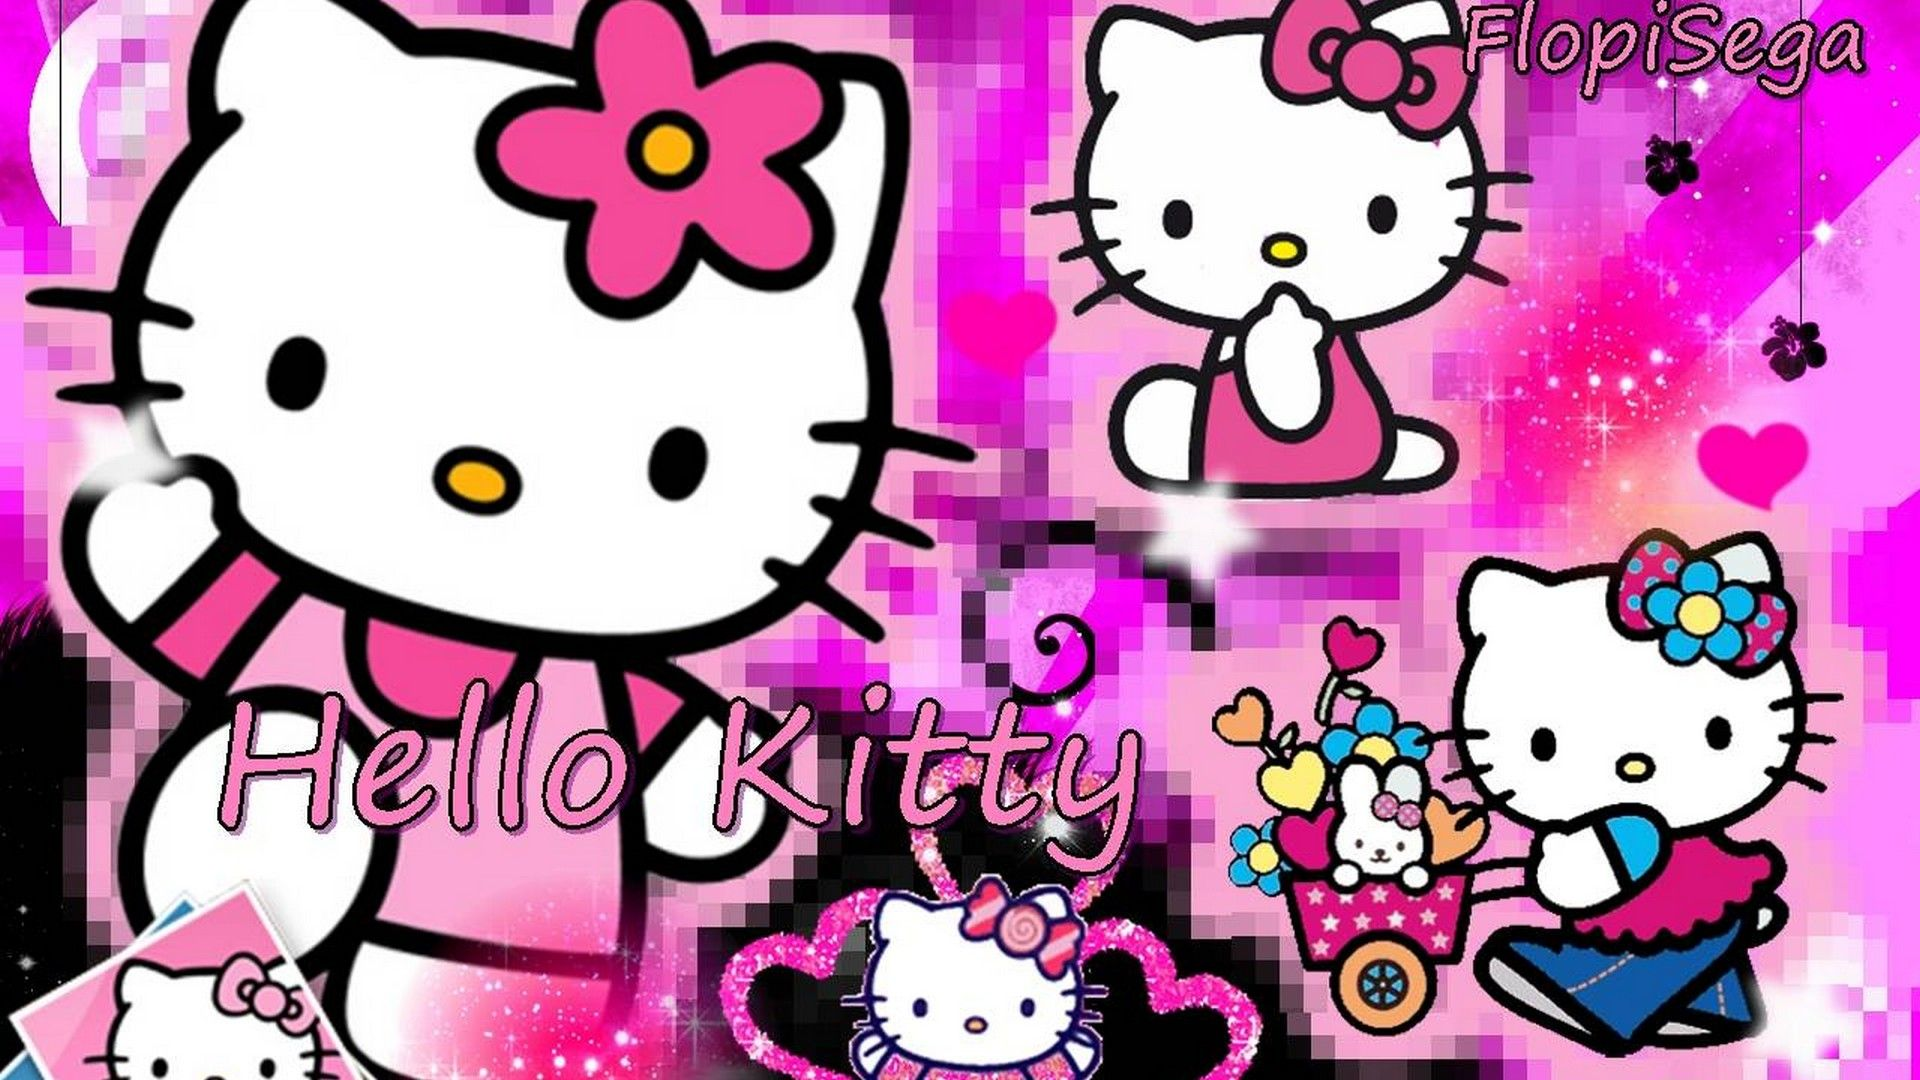 Hello Kitty Images Wallpaper For Desktop Best Hd Wallpapers Hello Kitty Images Hello Kitty Wallpaper Hd Hello Kitty Wallpaper